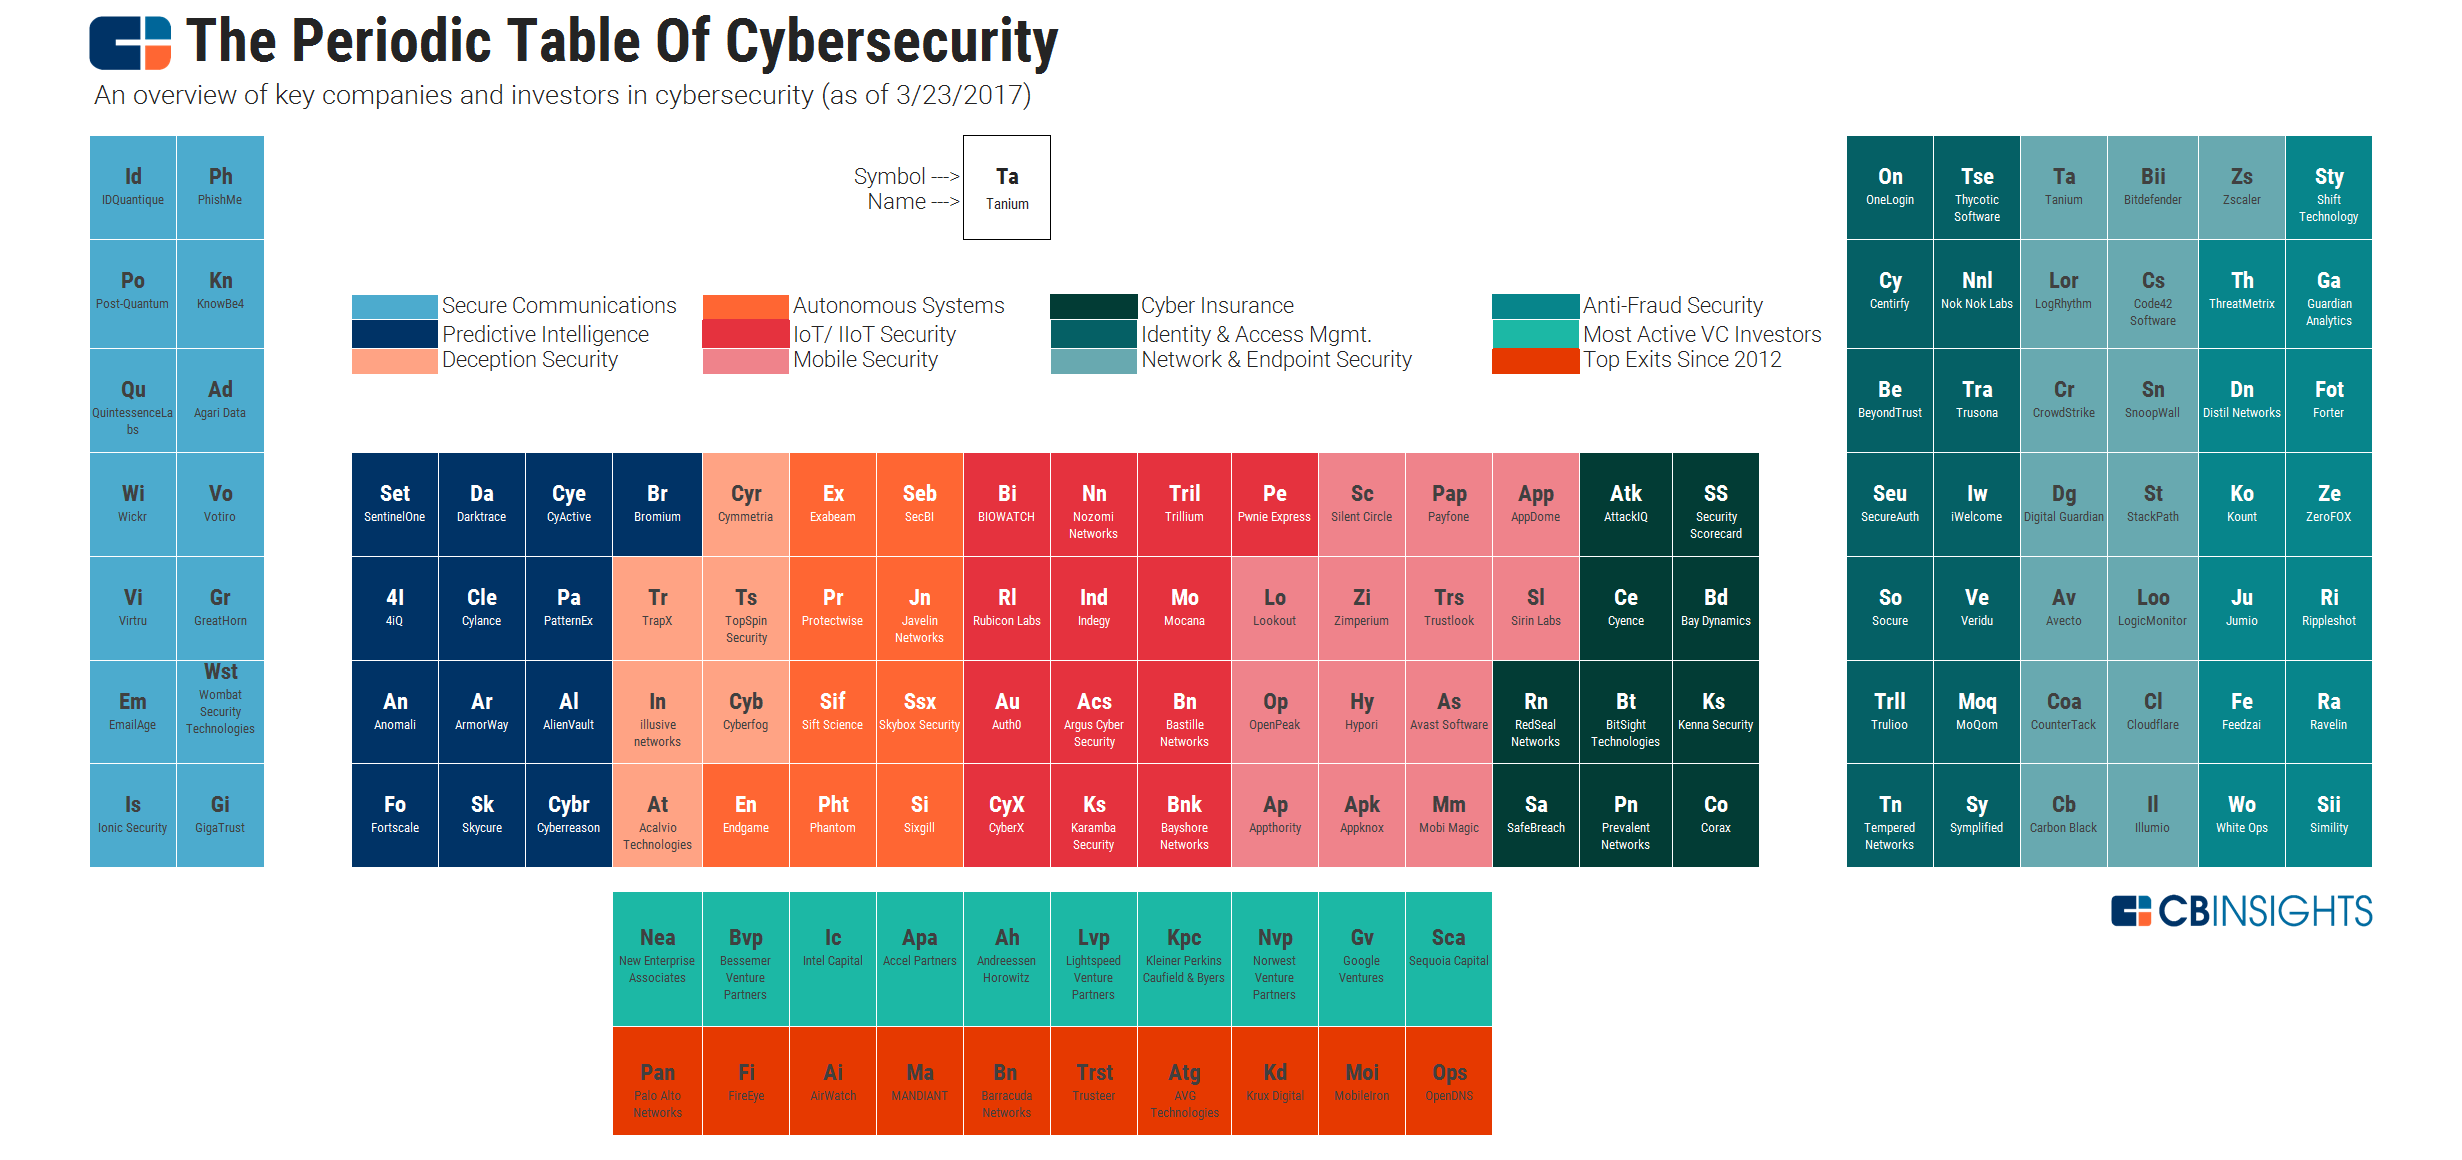 Periodic-table-of-cybersecurity-image-2.png